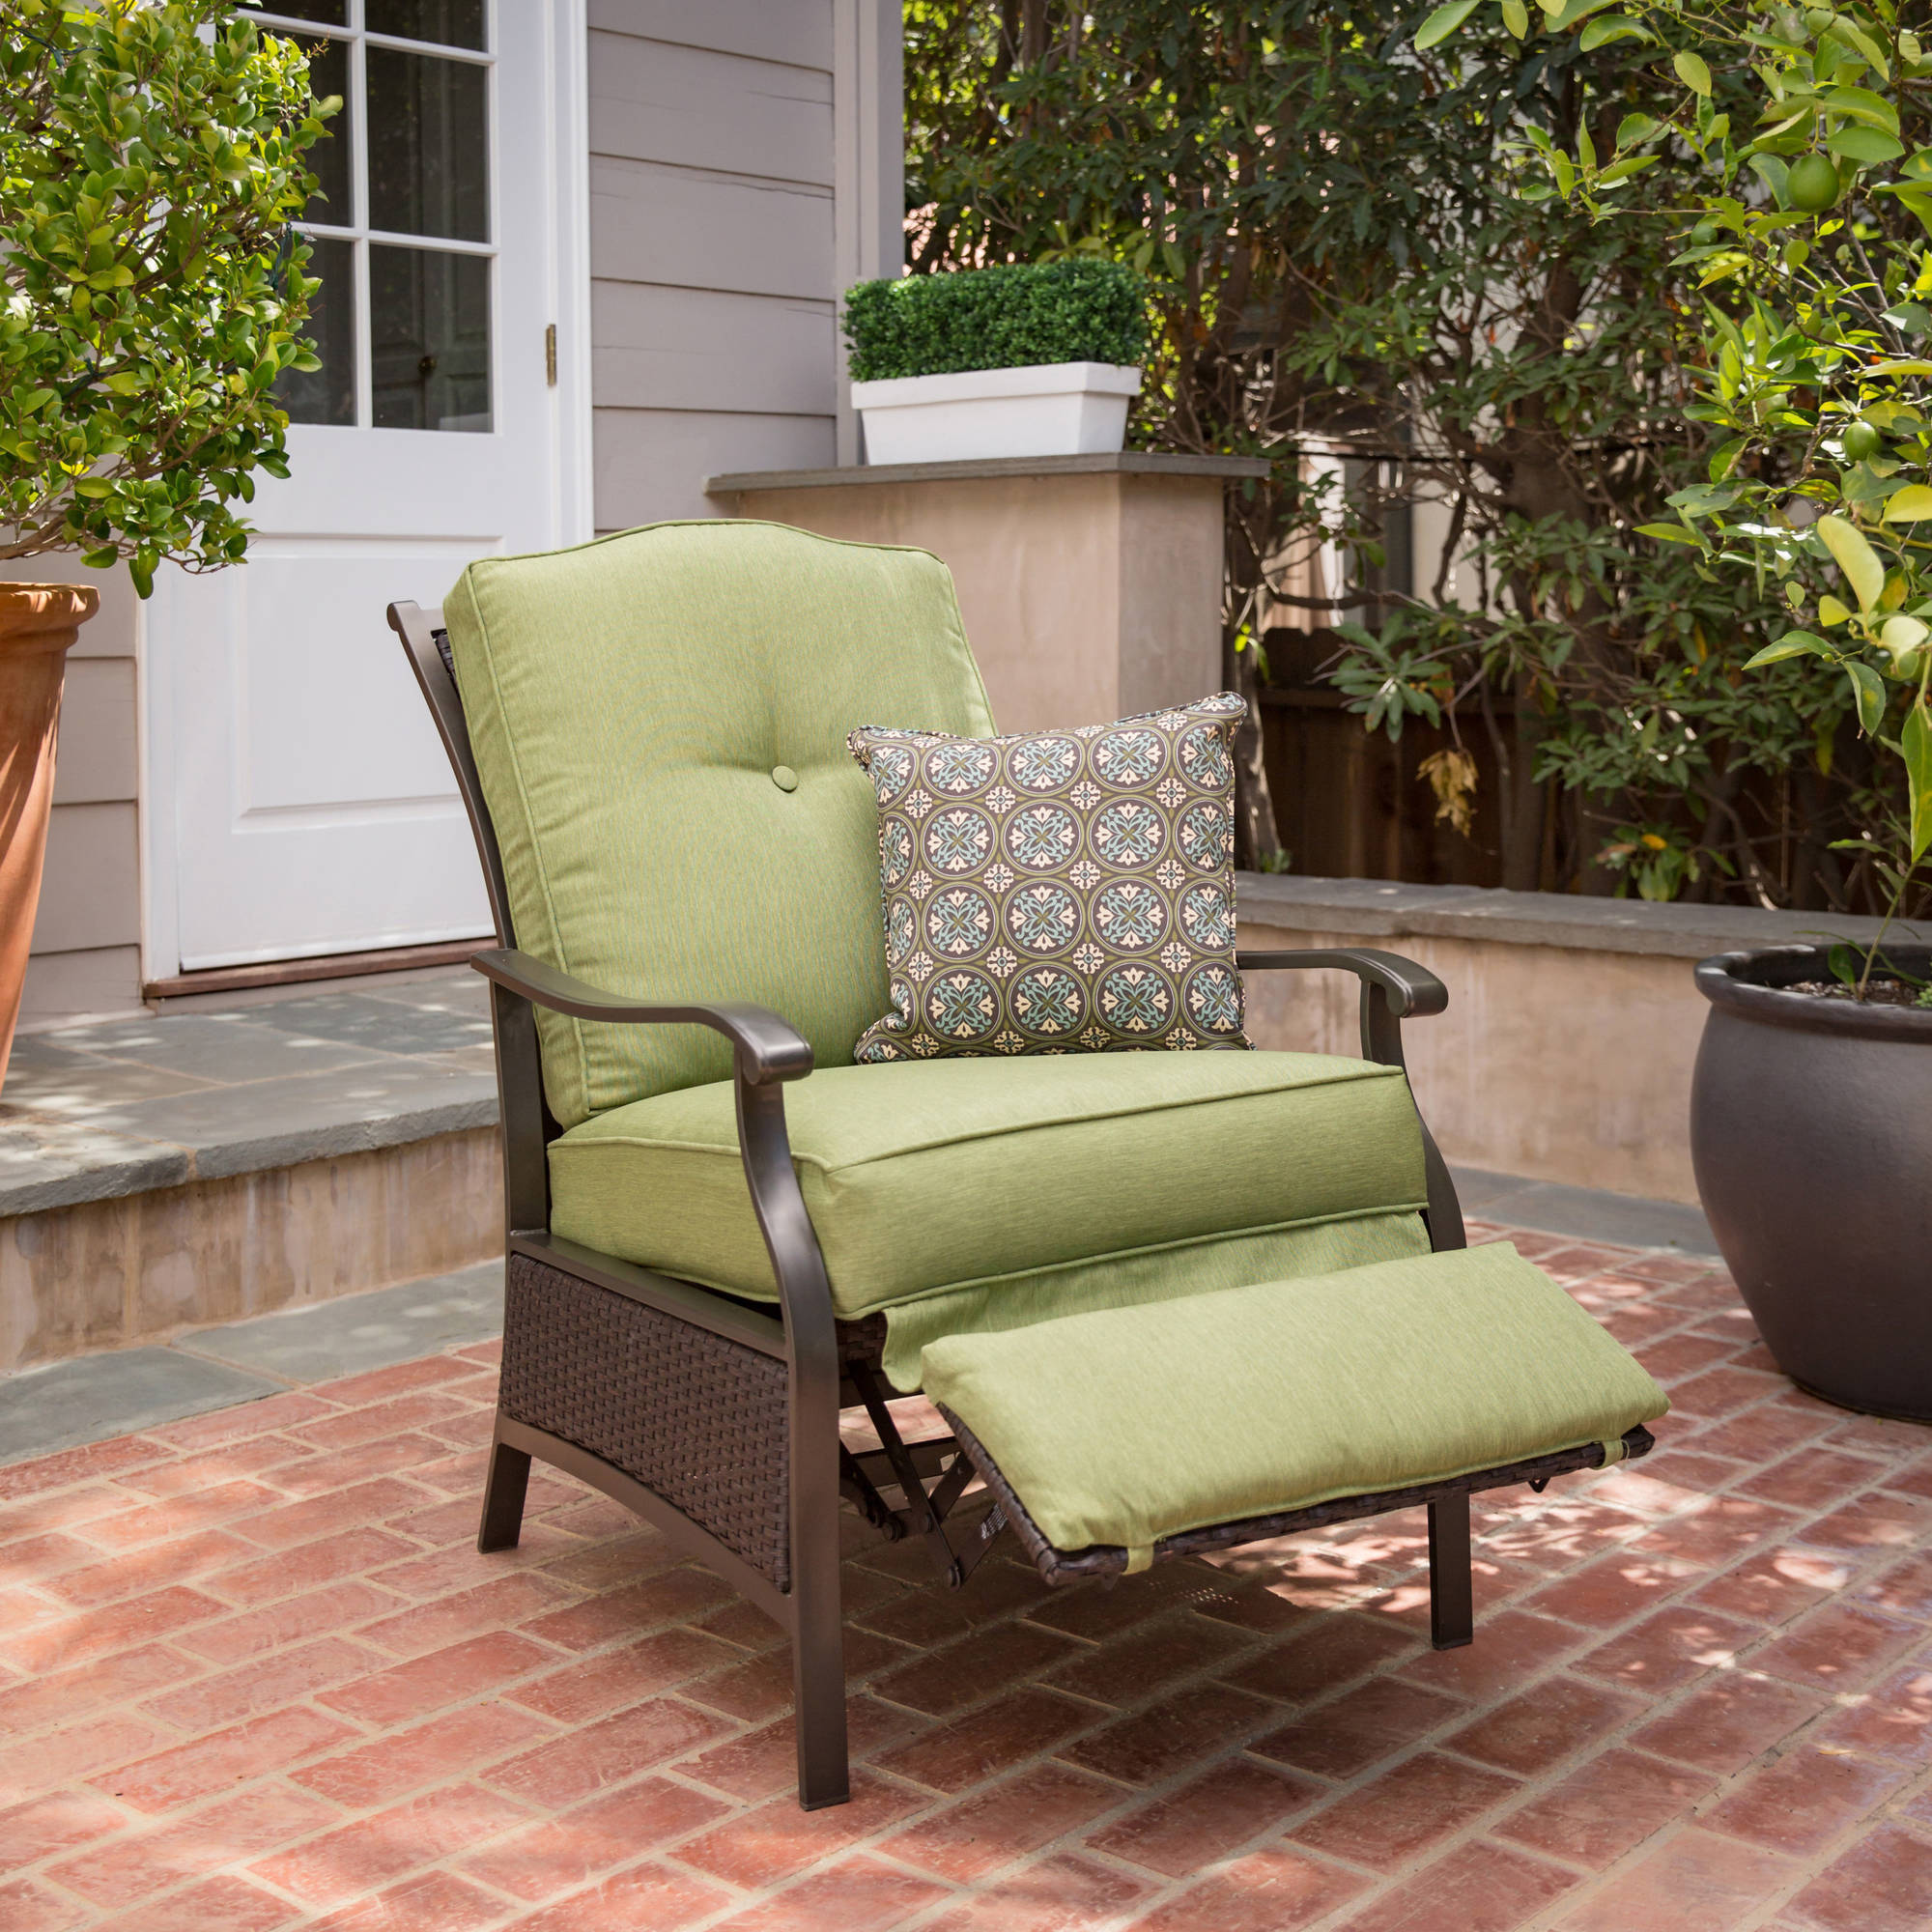 lawn furniture patio furniture - walmart.com FOPIMWC